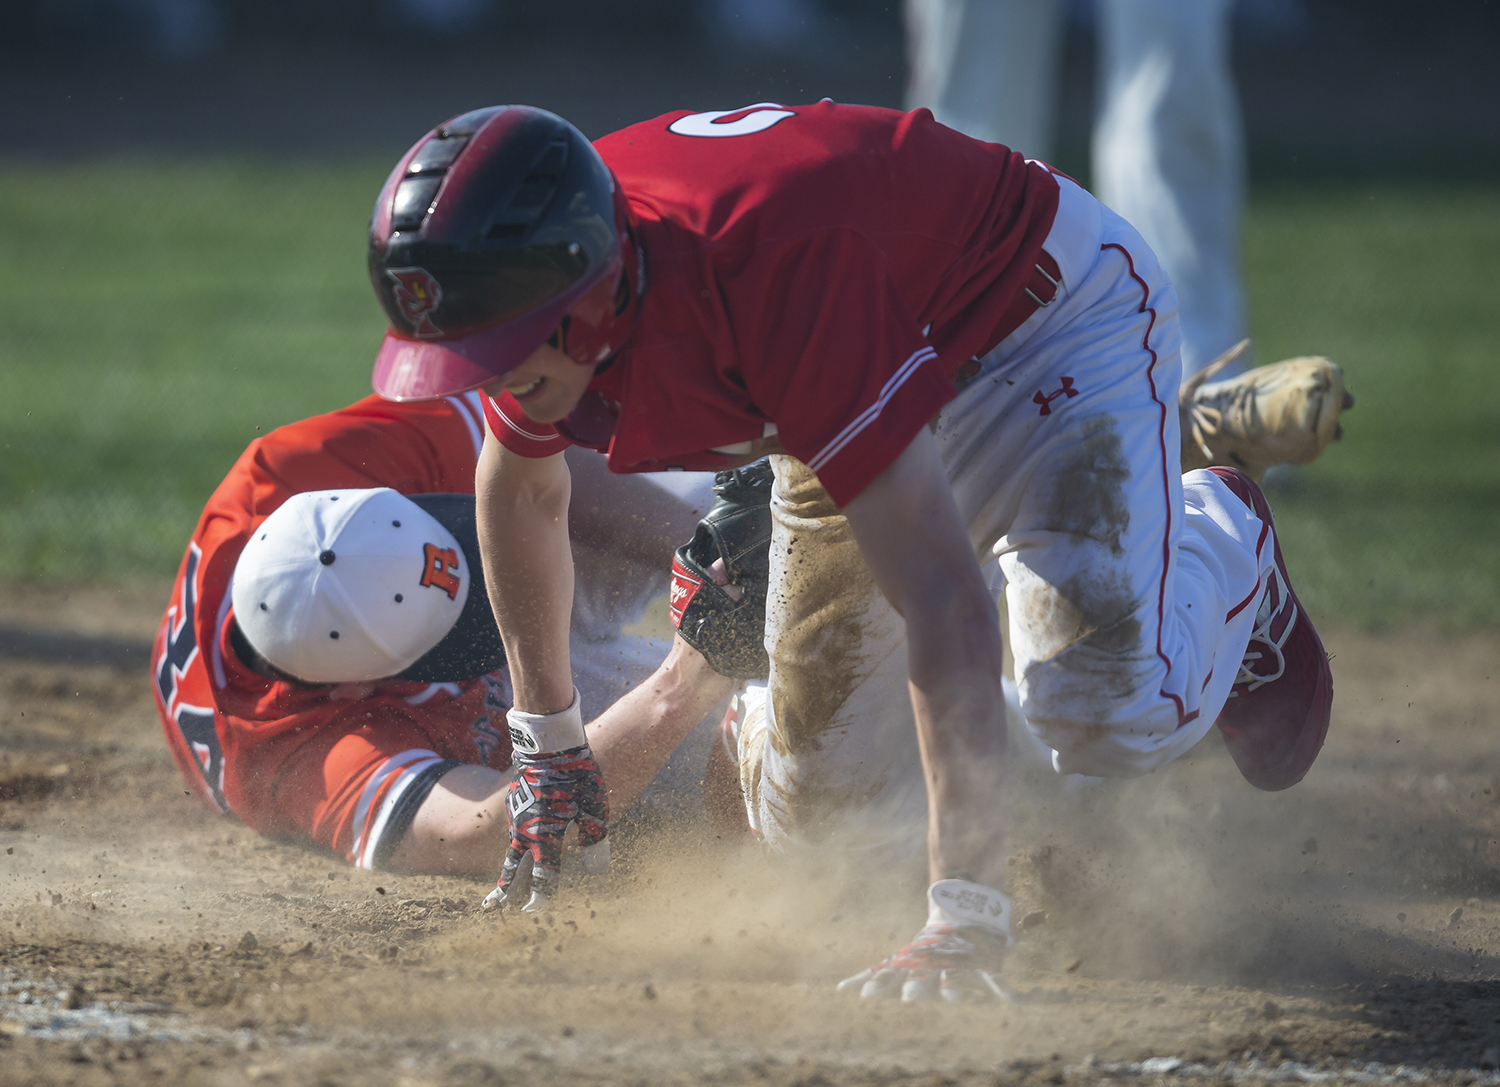 Glenwood's Nolan Rooney (2) beats the tag from Rochester's Cameron Edmonson (34) at home plate for a stolen base off a wild pitch scoring a run to put the Titans up 2-1 in the third inning at Rochester High School, Tuesday, April 16, 2019, in Rochester, Ill. [Justin L. Fowler/The State Journal-Register]